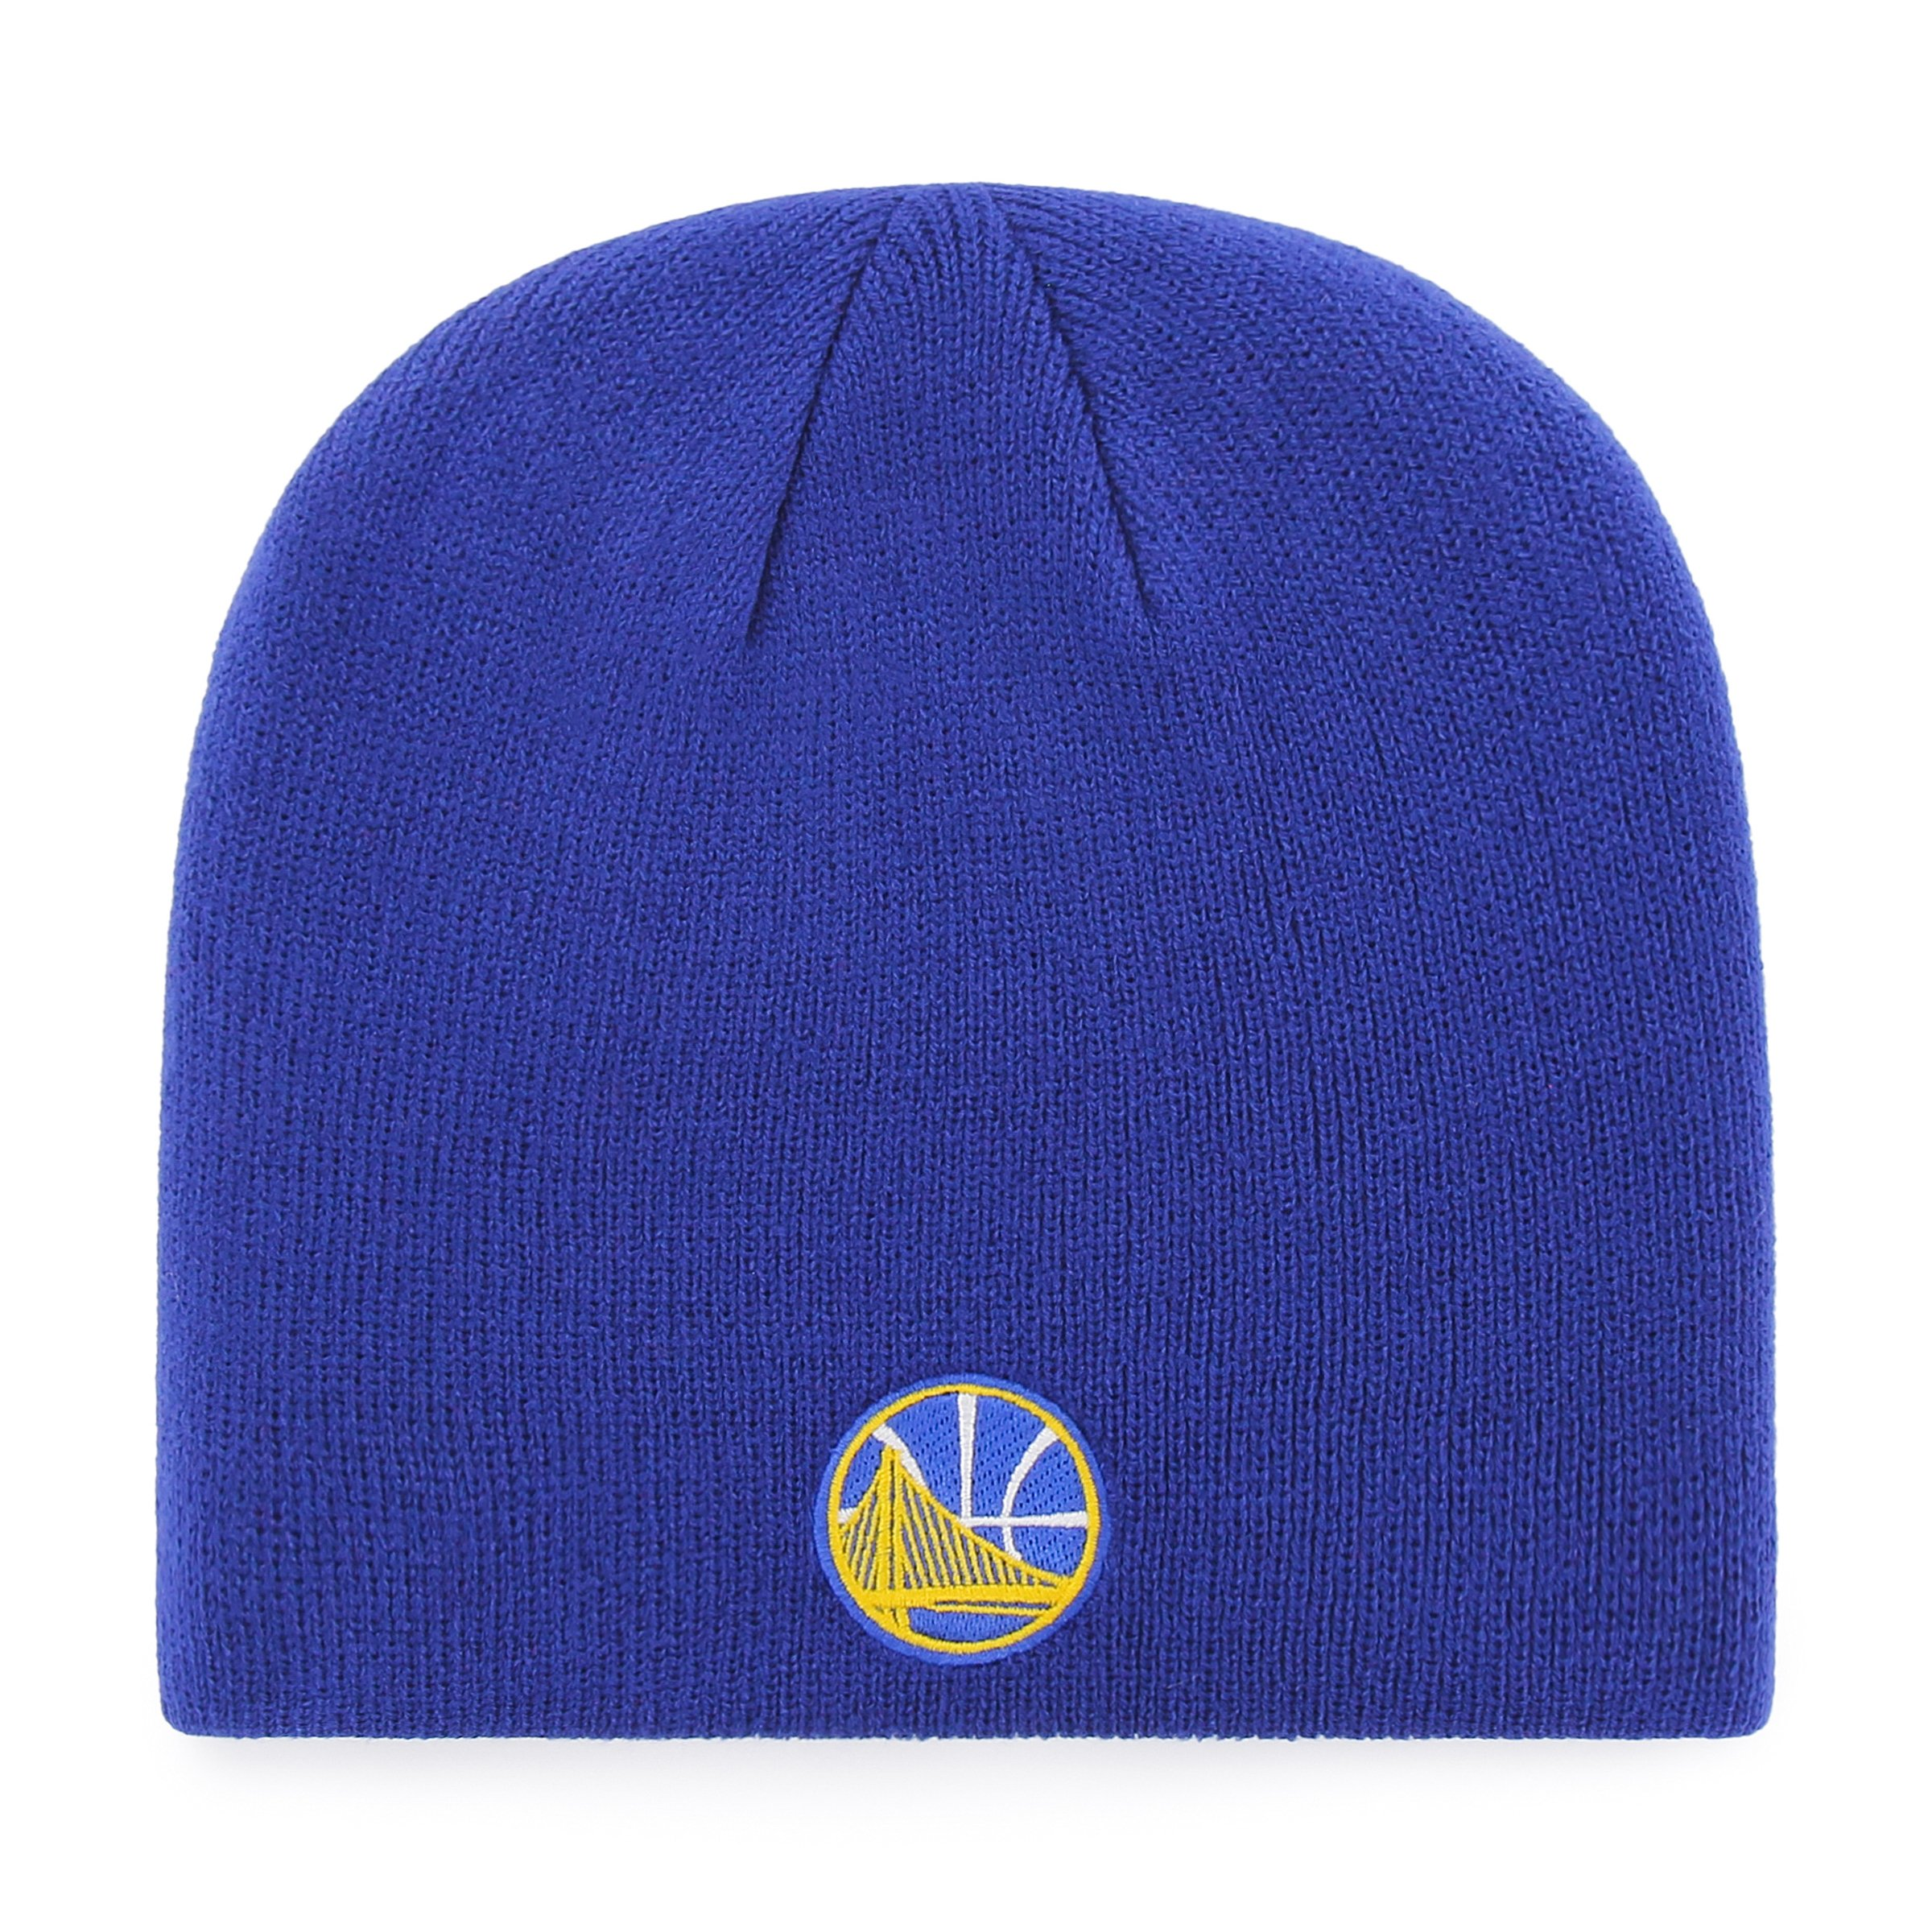 purchase cheap 28f5c 86974 OTS NBA Golden State Warriors Beanie Knit Cap, Royal, One Size